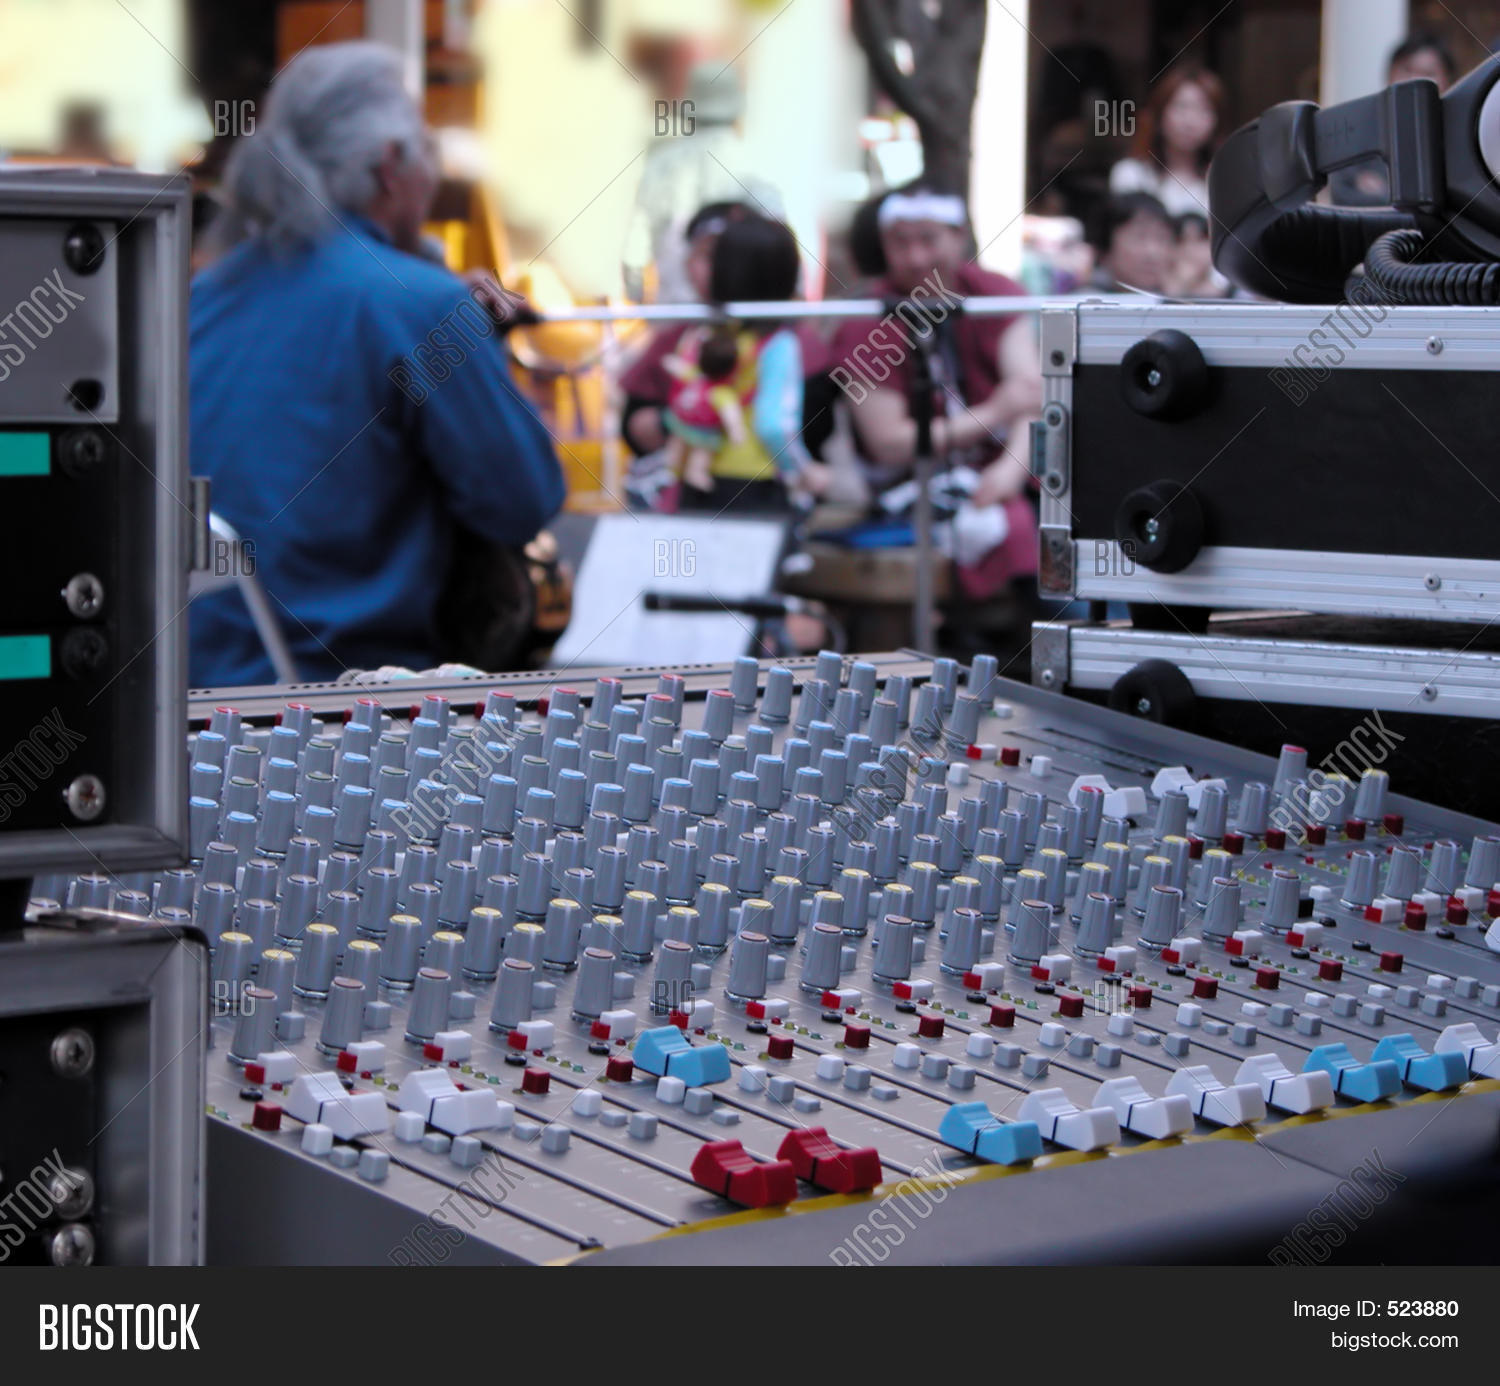 adjust,amplifier,analog,artist,audience,audio,bias,board,brass,broadcast,button,buttons,command,desk,digital,effect,electronic,electronics,entertainment,equalizer,festival,hi-fi,input,instrument,live,loud,macro,media,meters,mix,mixer,mixing,mixing-desk,music,musician,people,performance,person,production,show,signal,slider,sound,street,studio,surround,switch,technology,terminal,volume